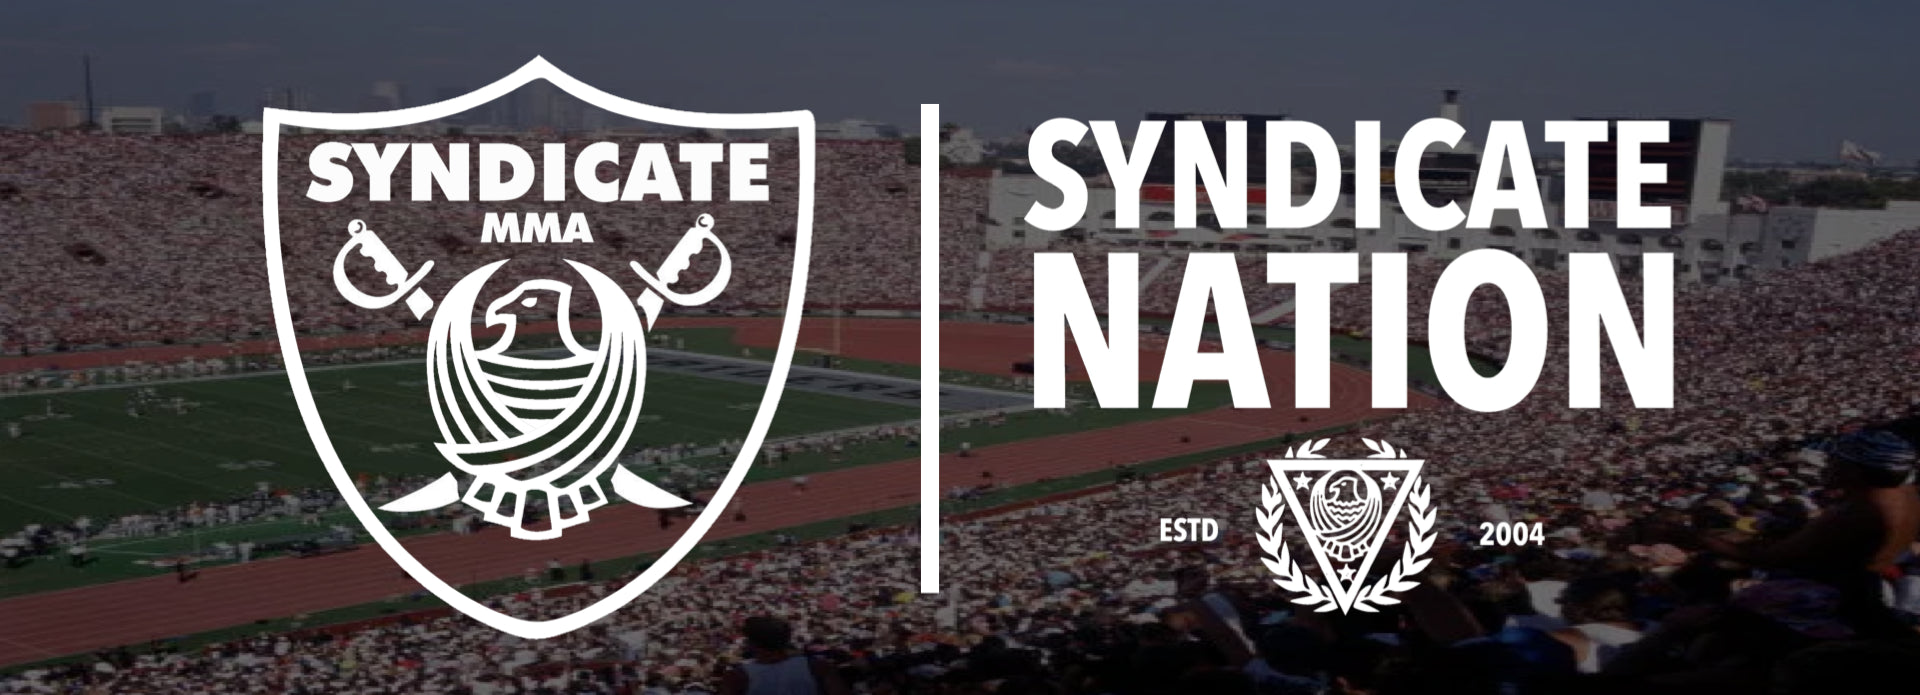 Syndicate nation tee shirt